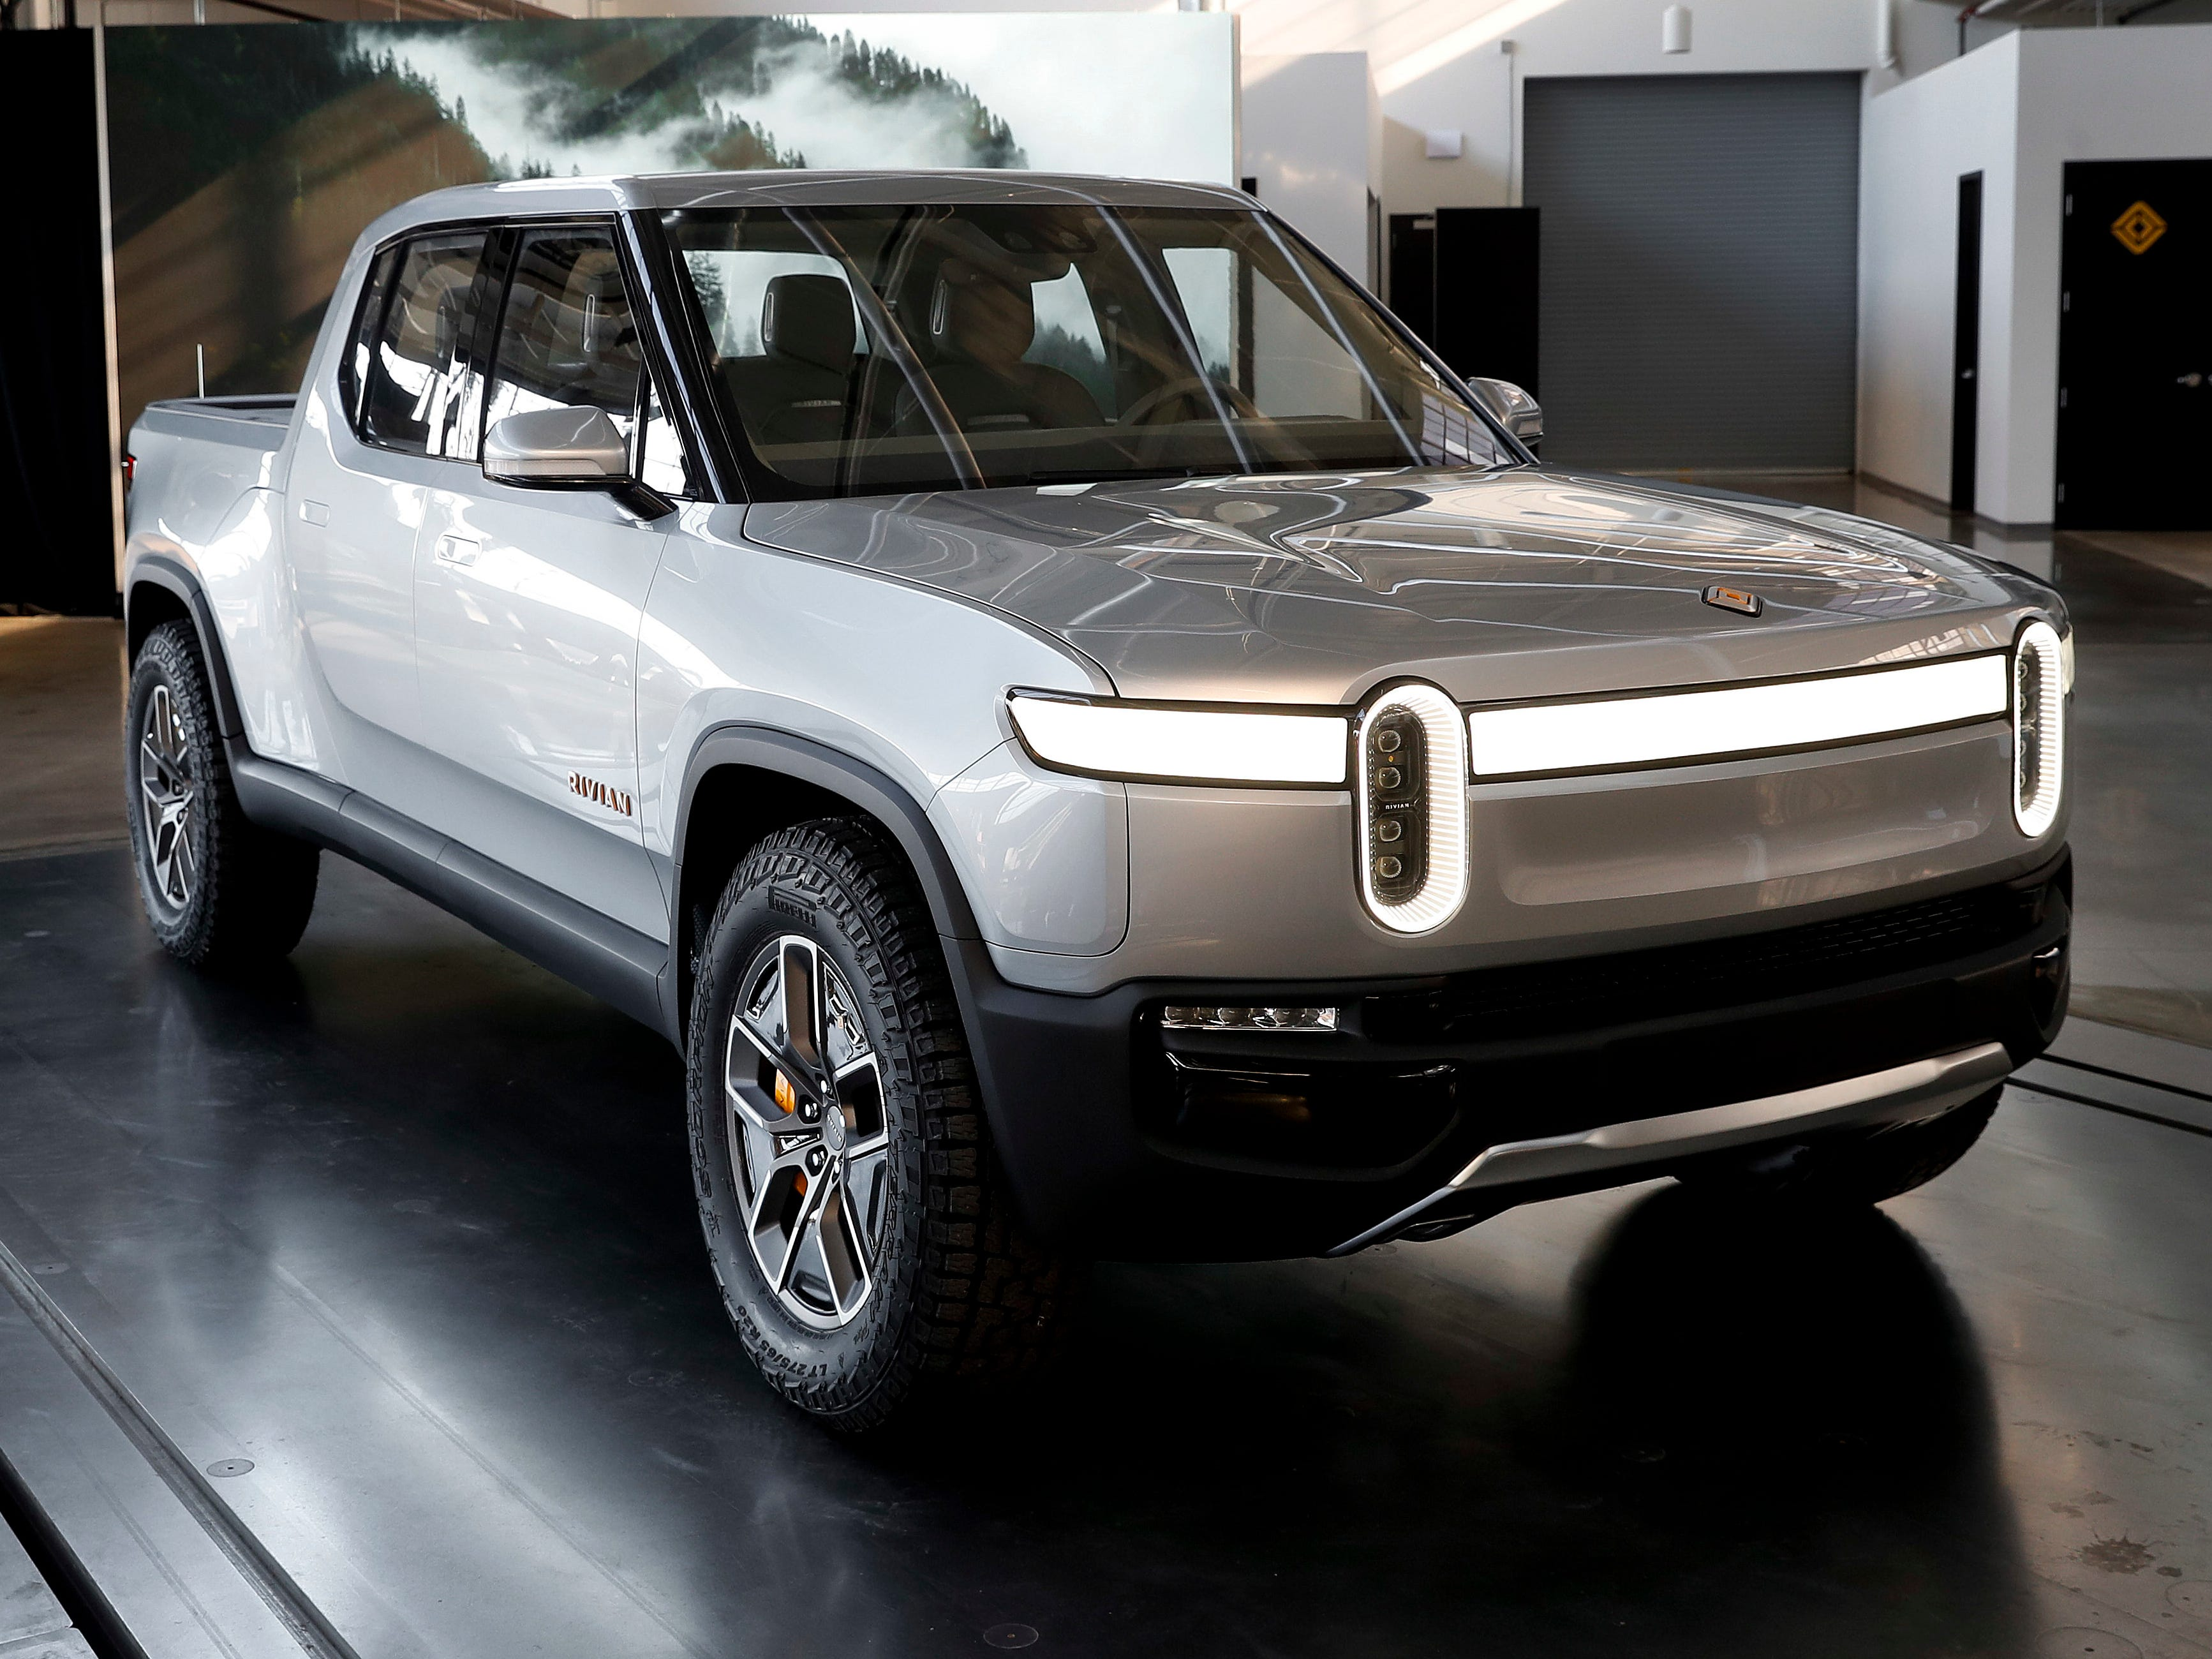 The fully electric Rivian R1T is an off-road pickup with up to 400 miles of range. It will be made in Normal, Illinois, and start at $69,000.